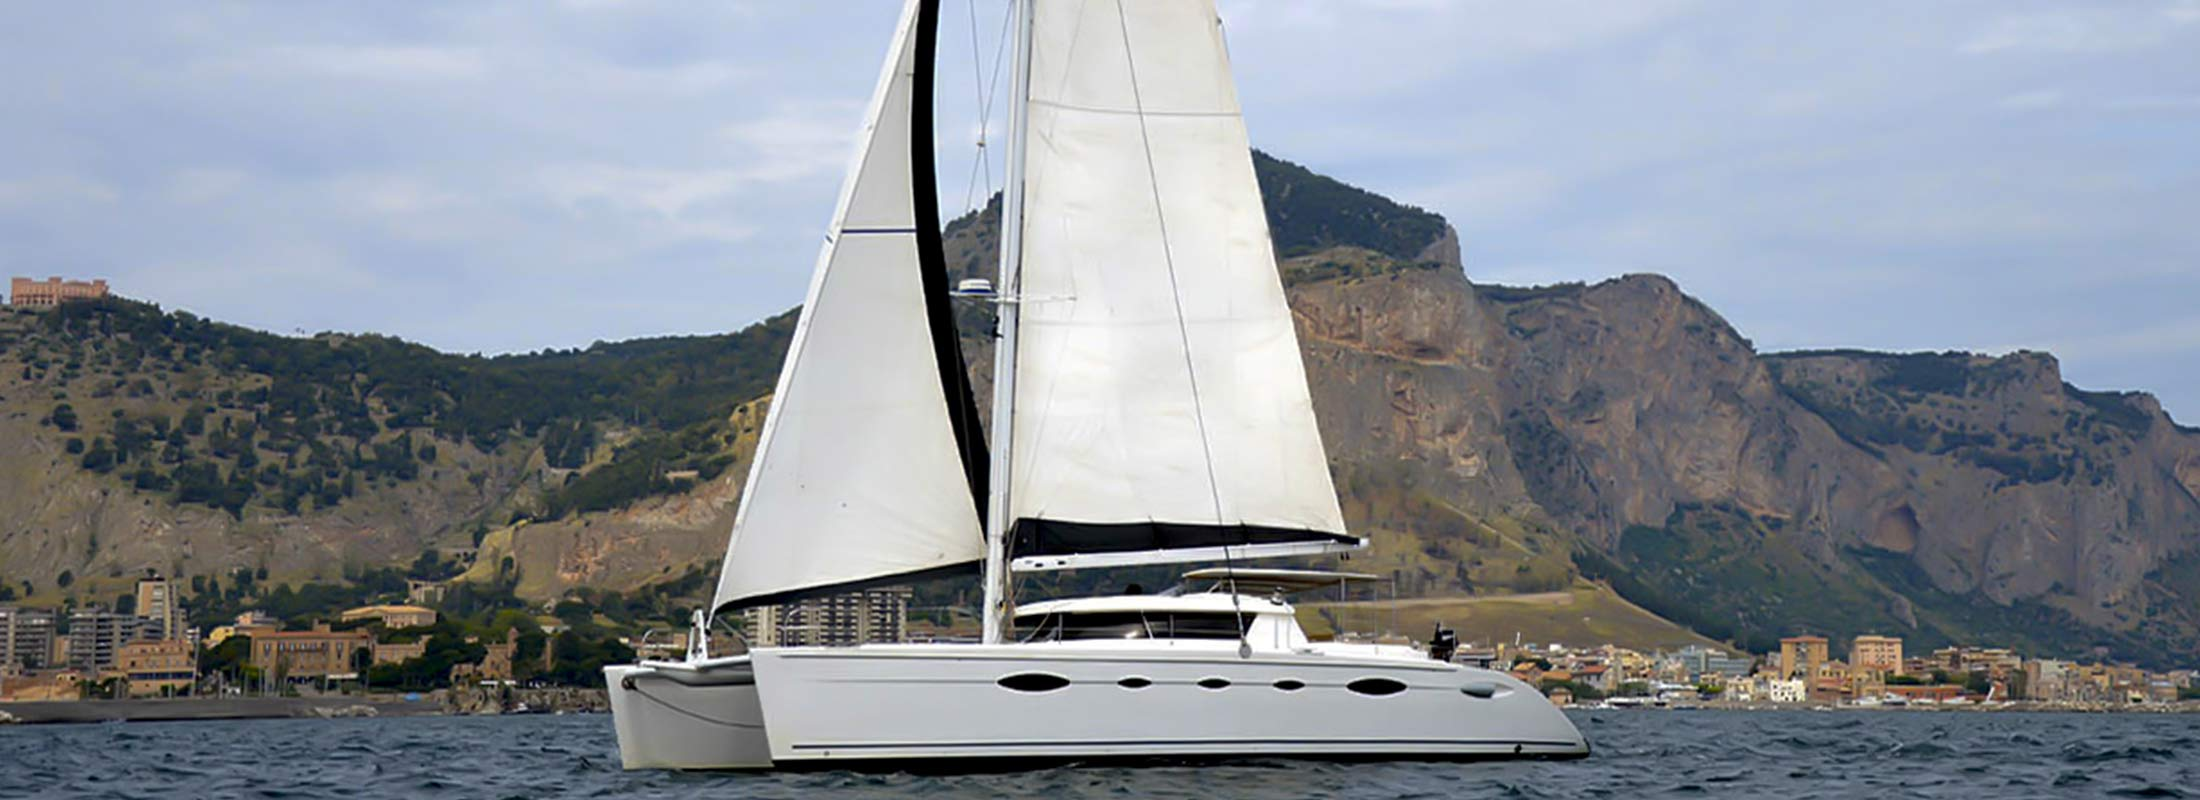 Whale Sailing Yacht for Charter Mediterranean slider 1